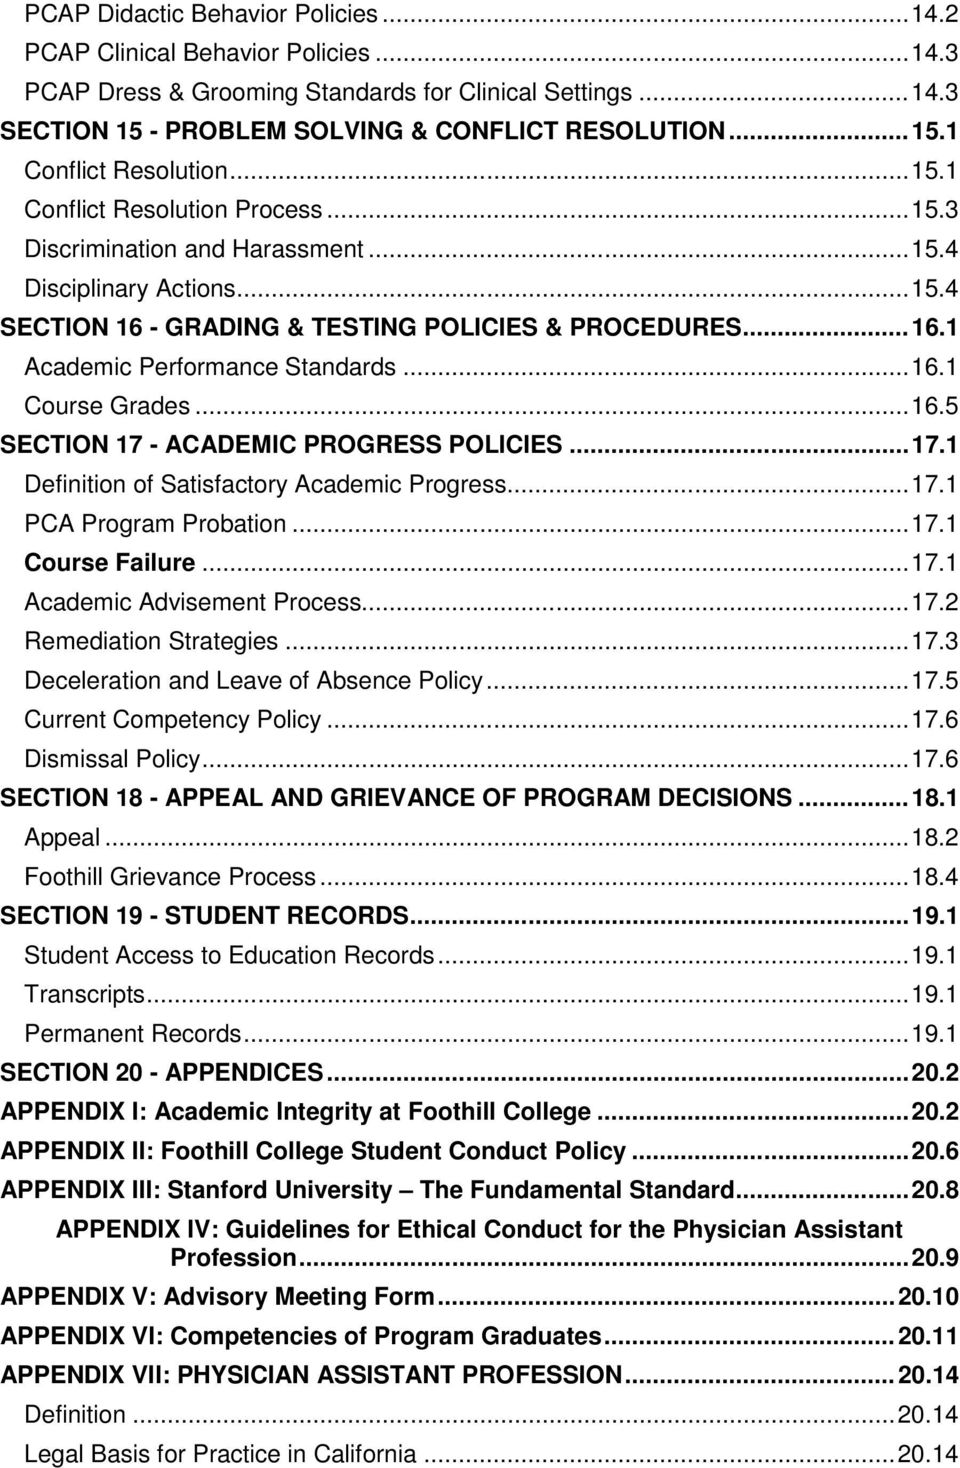 .. 16.1 Course Grades... 16.5 SECTION 17 - ACADEMIC PROGRESS POLICIES... 17.1 Definition of Satisfactory Academic Progress... 17.1 PCA Program Probation... 17.1 Course Failure... 17.1 Academic Advisement Process.